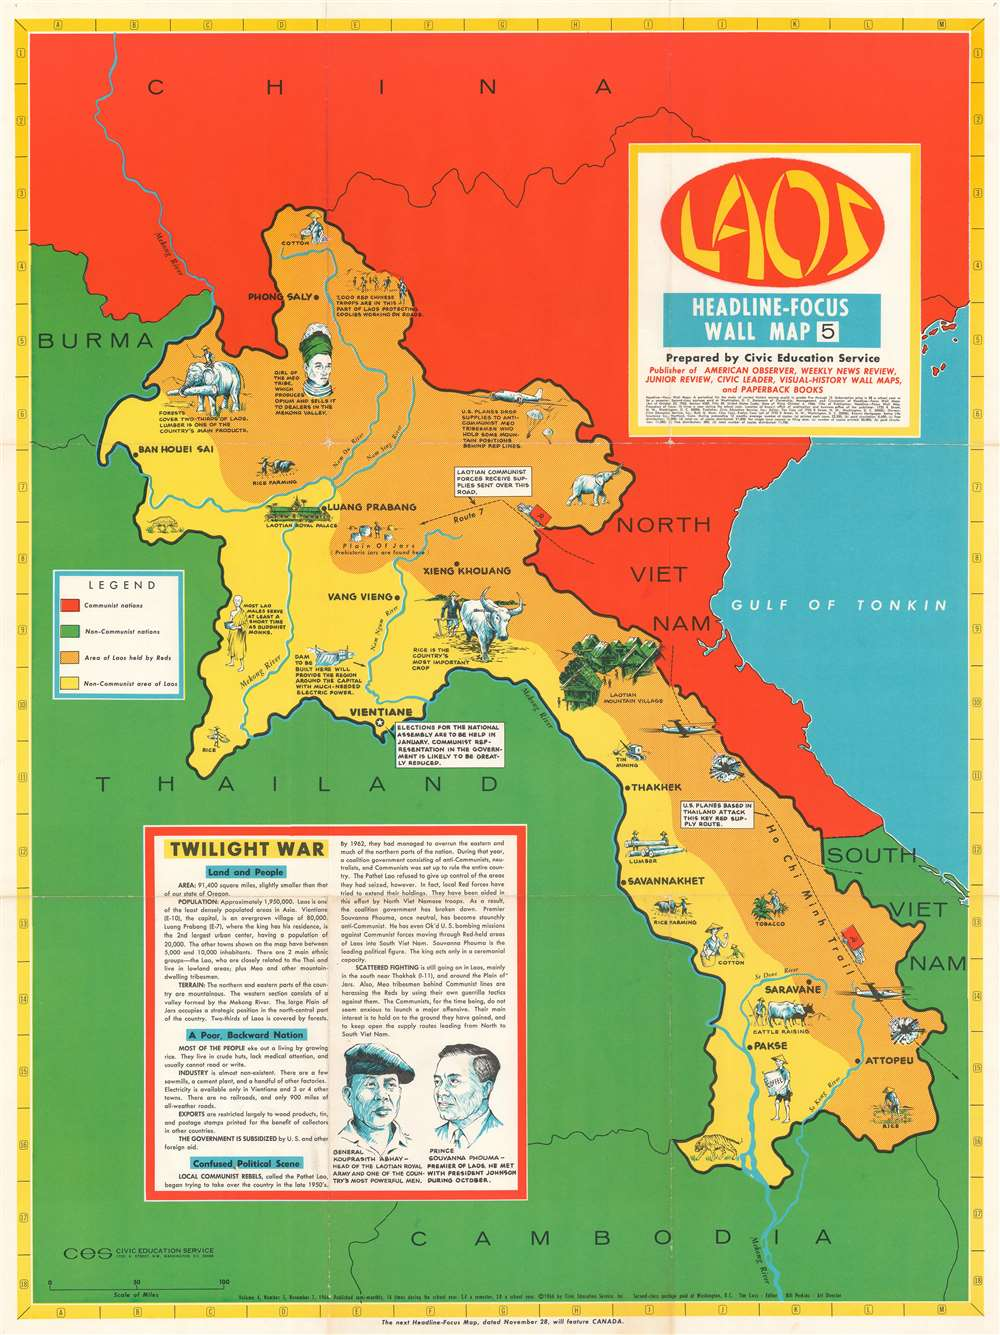 1966 Civic Education Service Pictorial Map of Laos During the Vietnam War